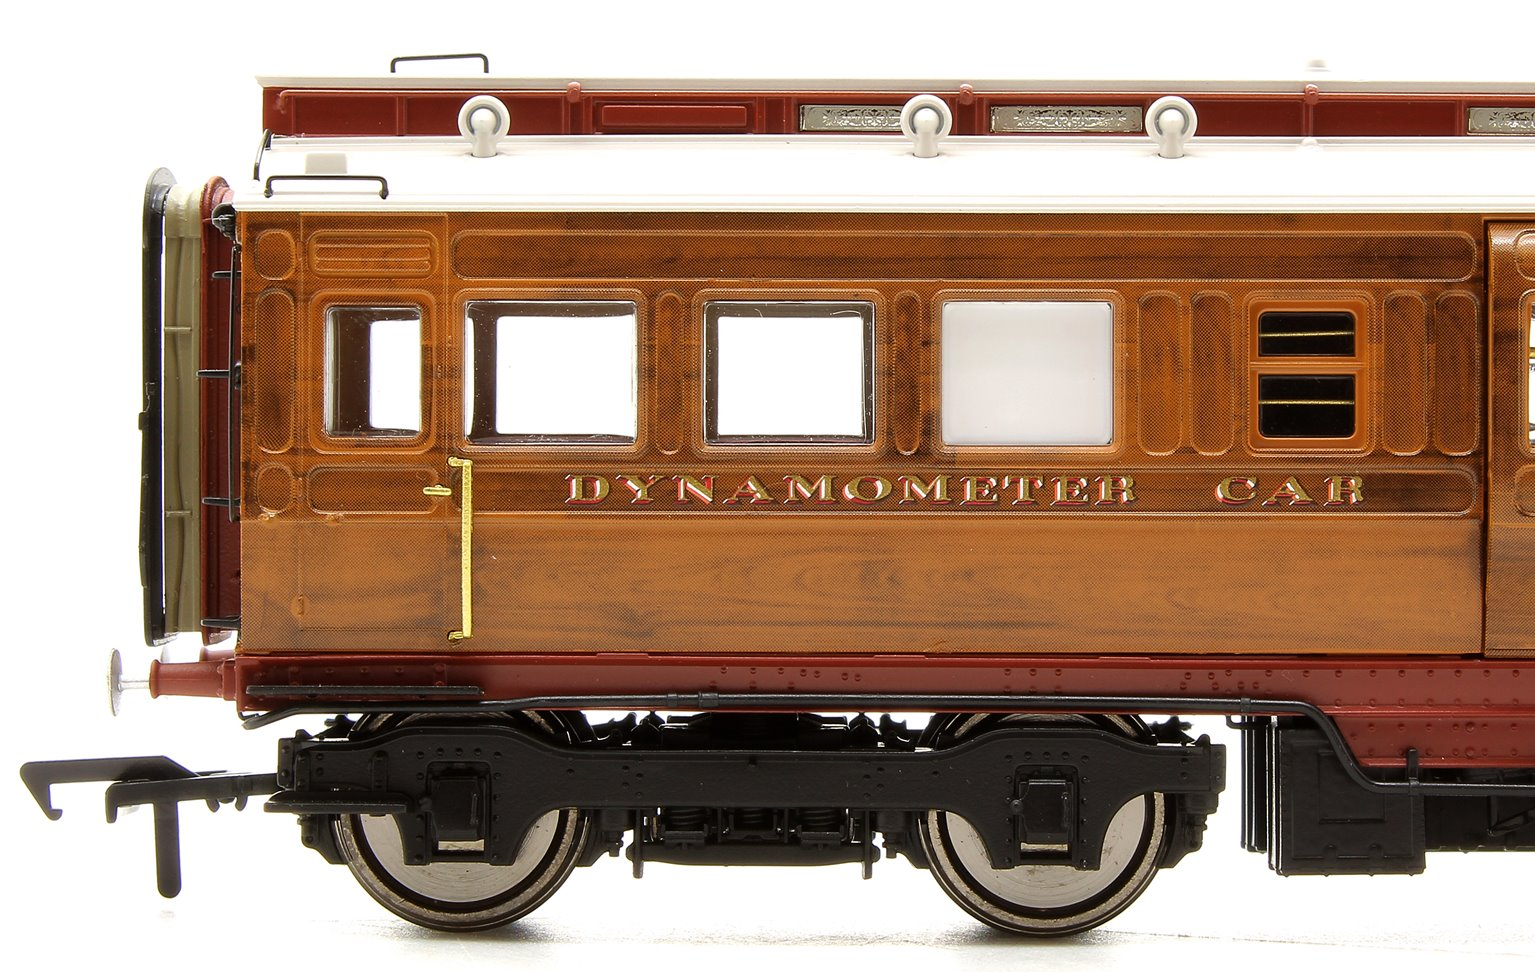 LNER Dynamometer Car - Version 2 LNER livery as it ran post 1946, as No. 902502, as it was for the 1948 British Railways locomotive exchange trials